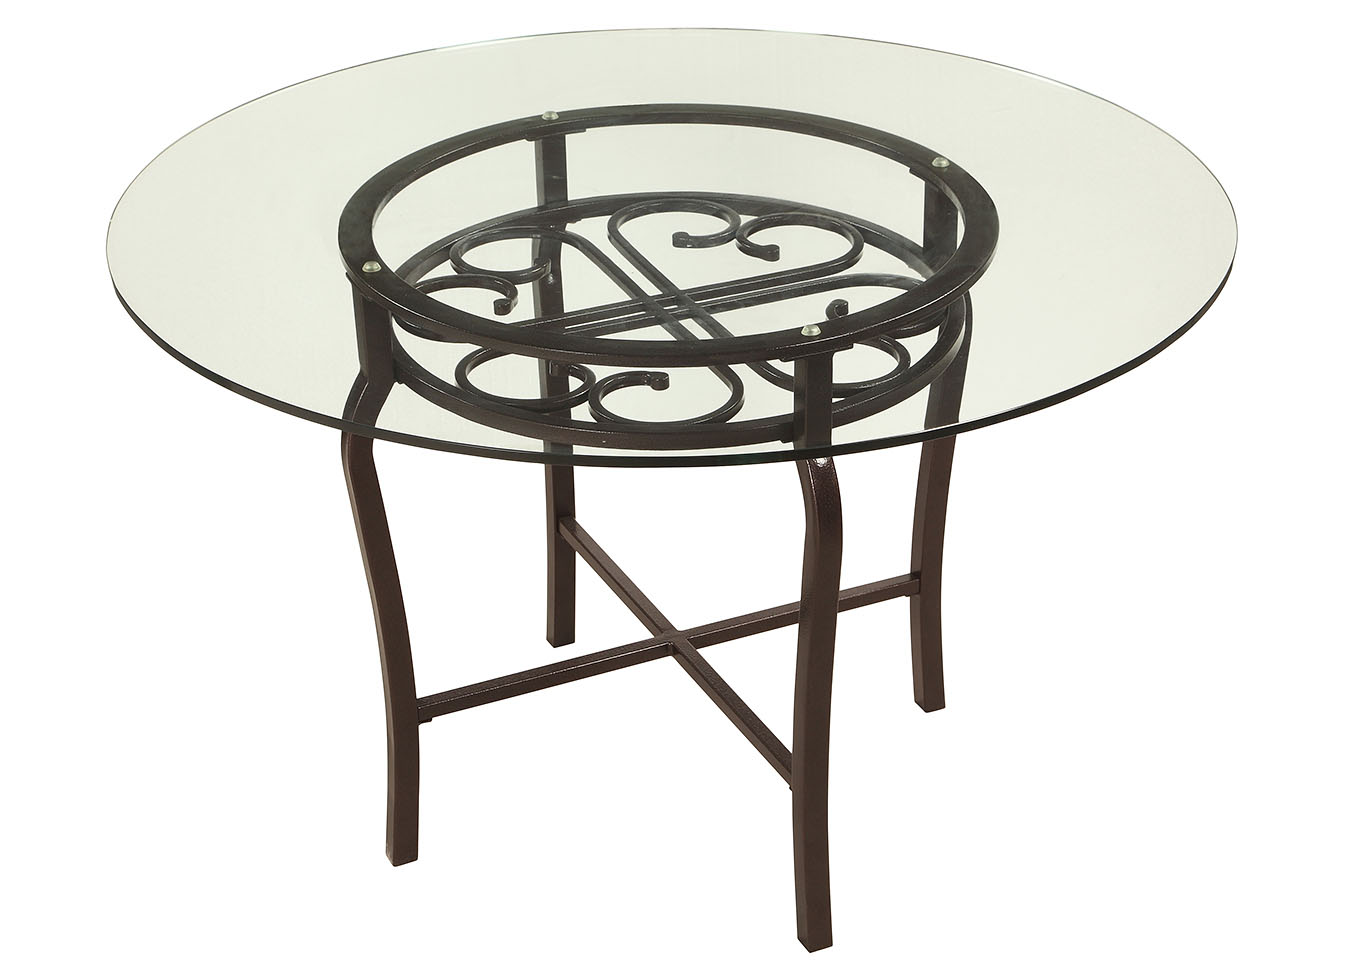 Lily Round Glass Table,Chintaly Imports